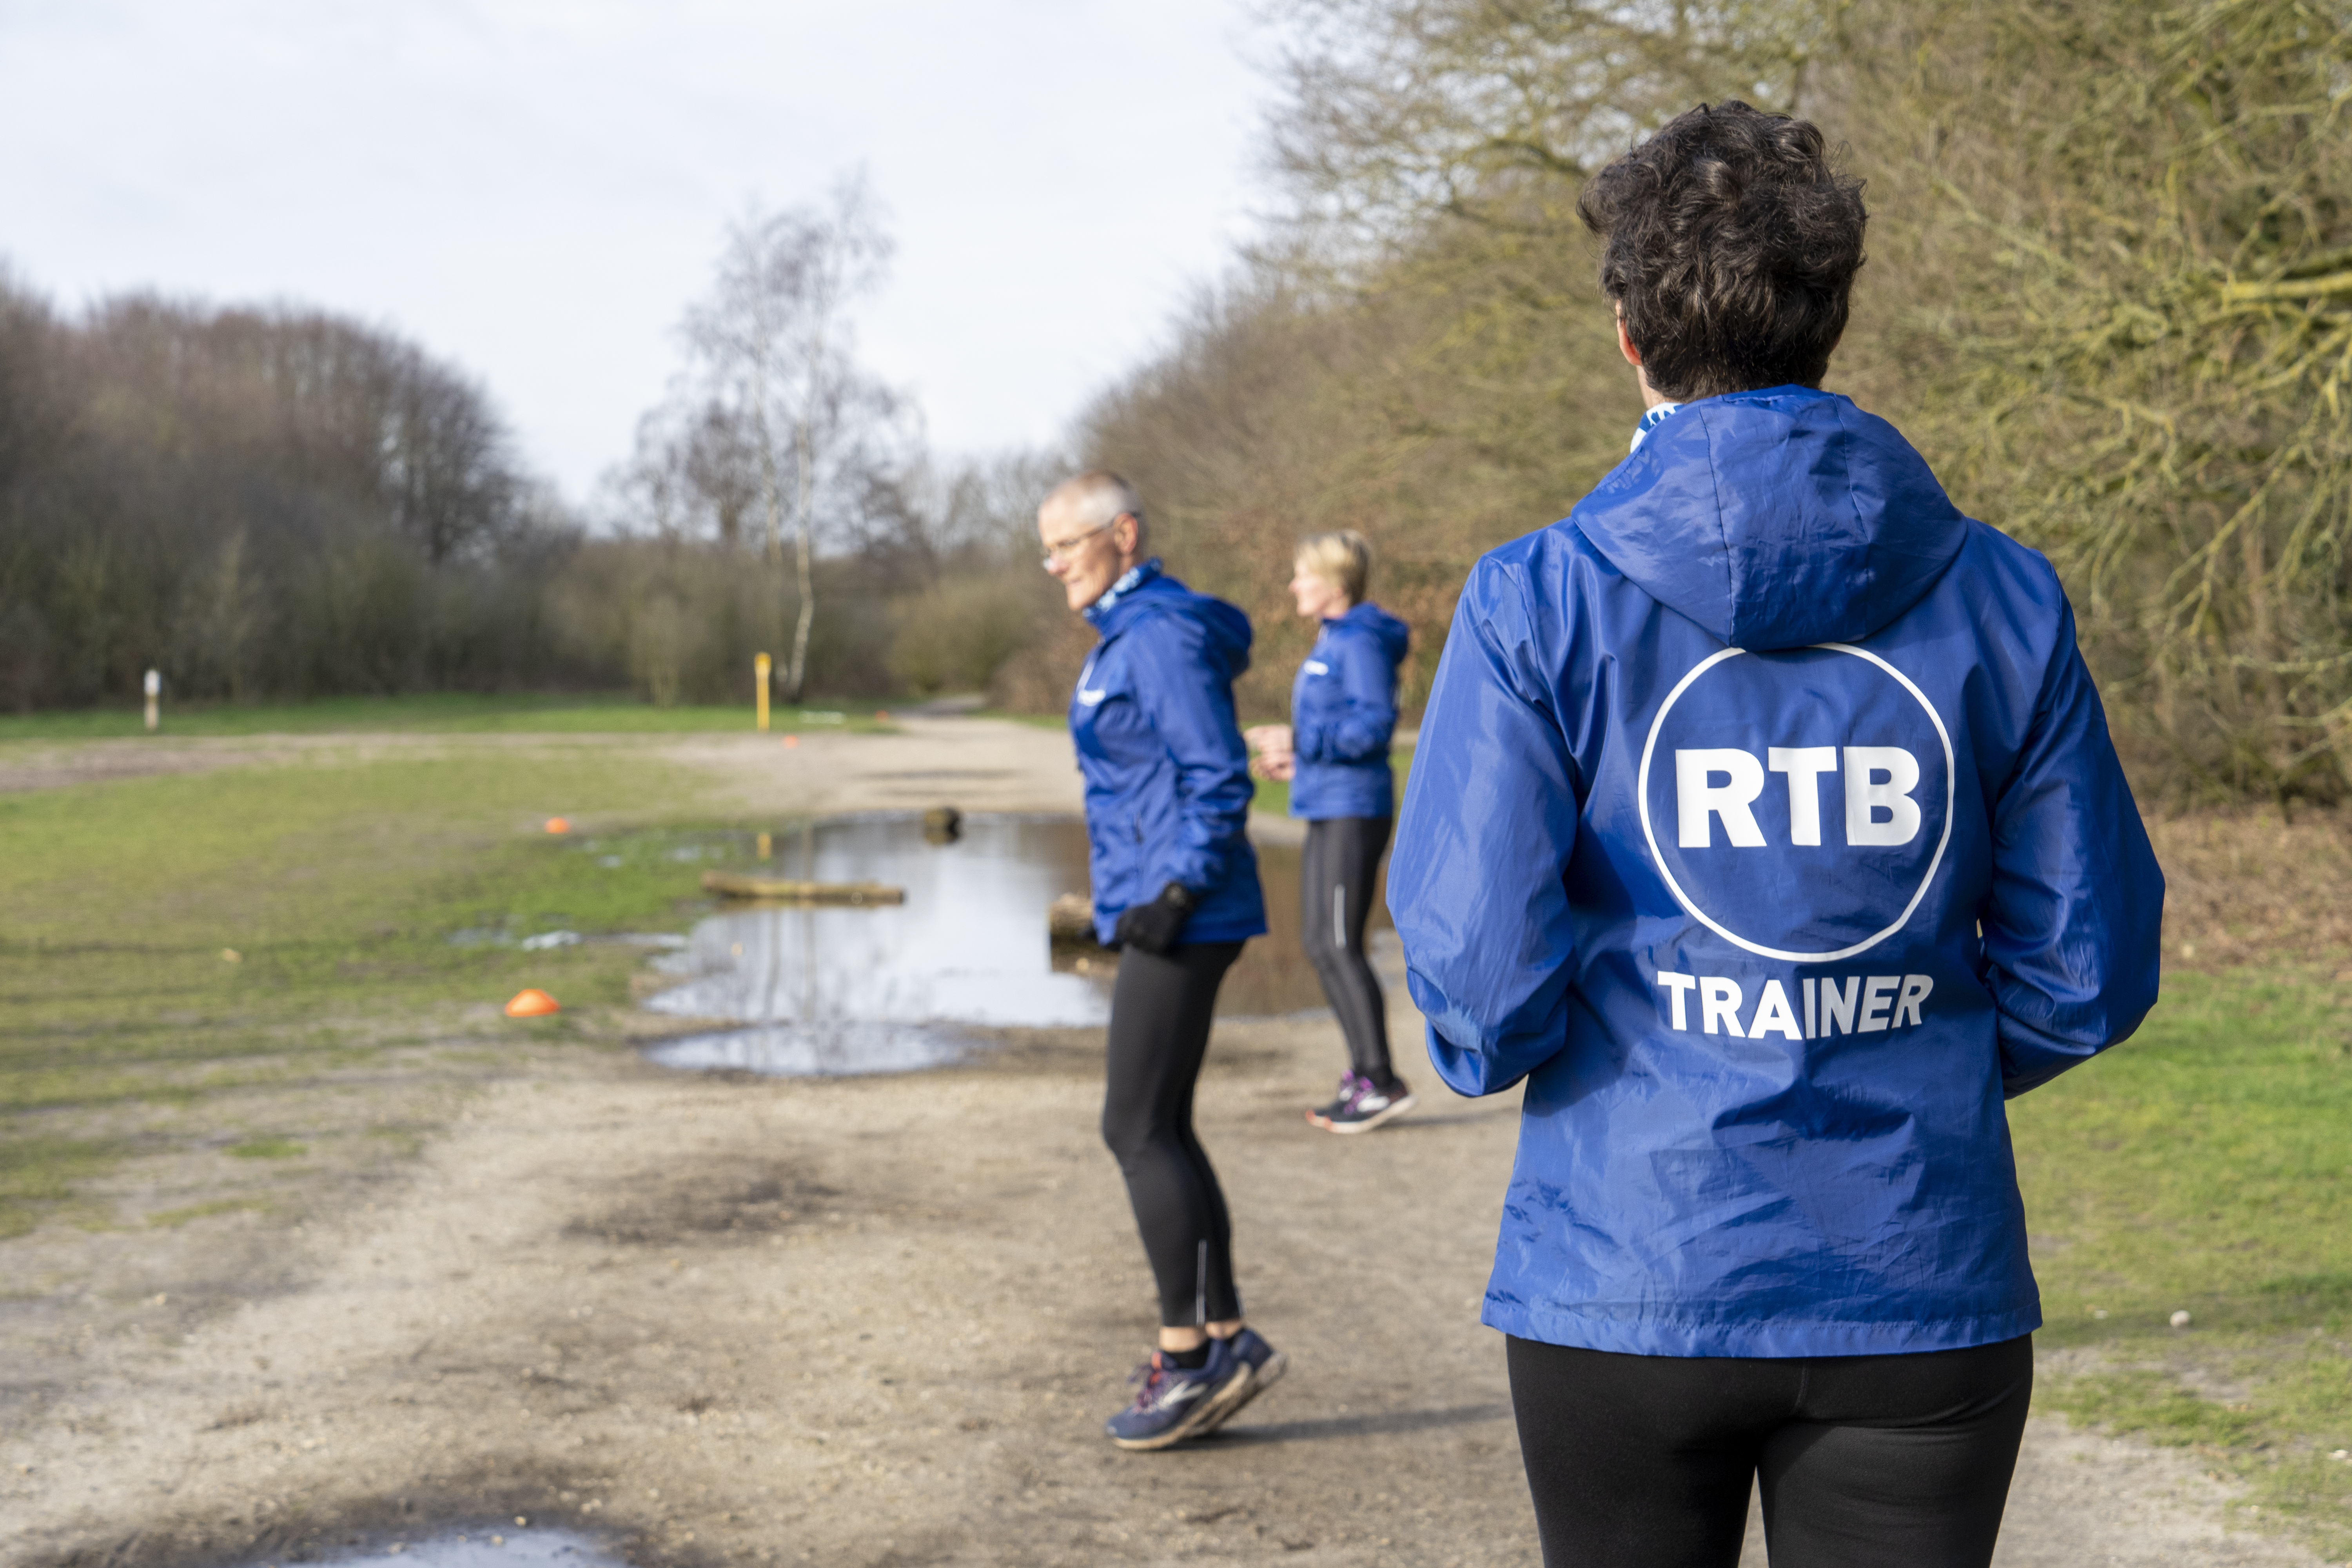 Trainers RTB